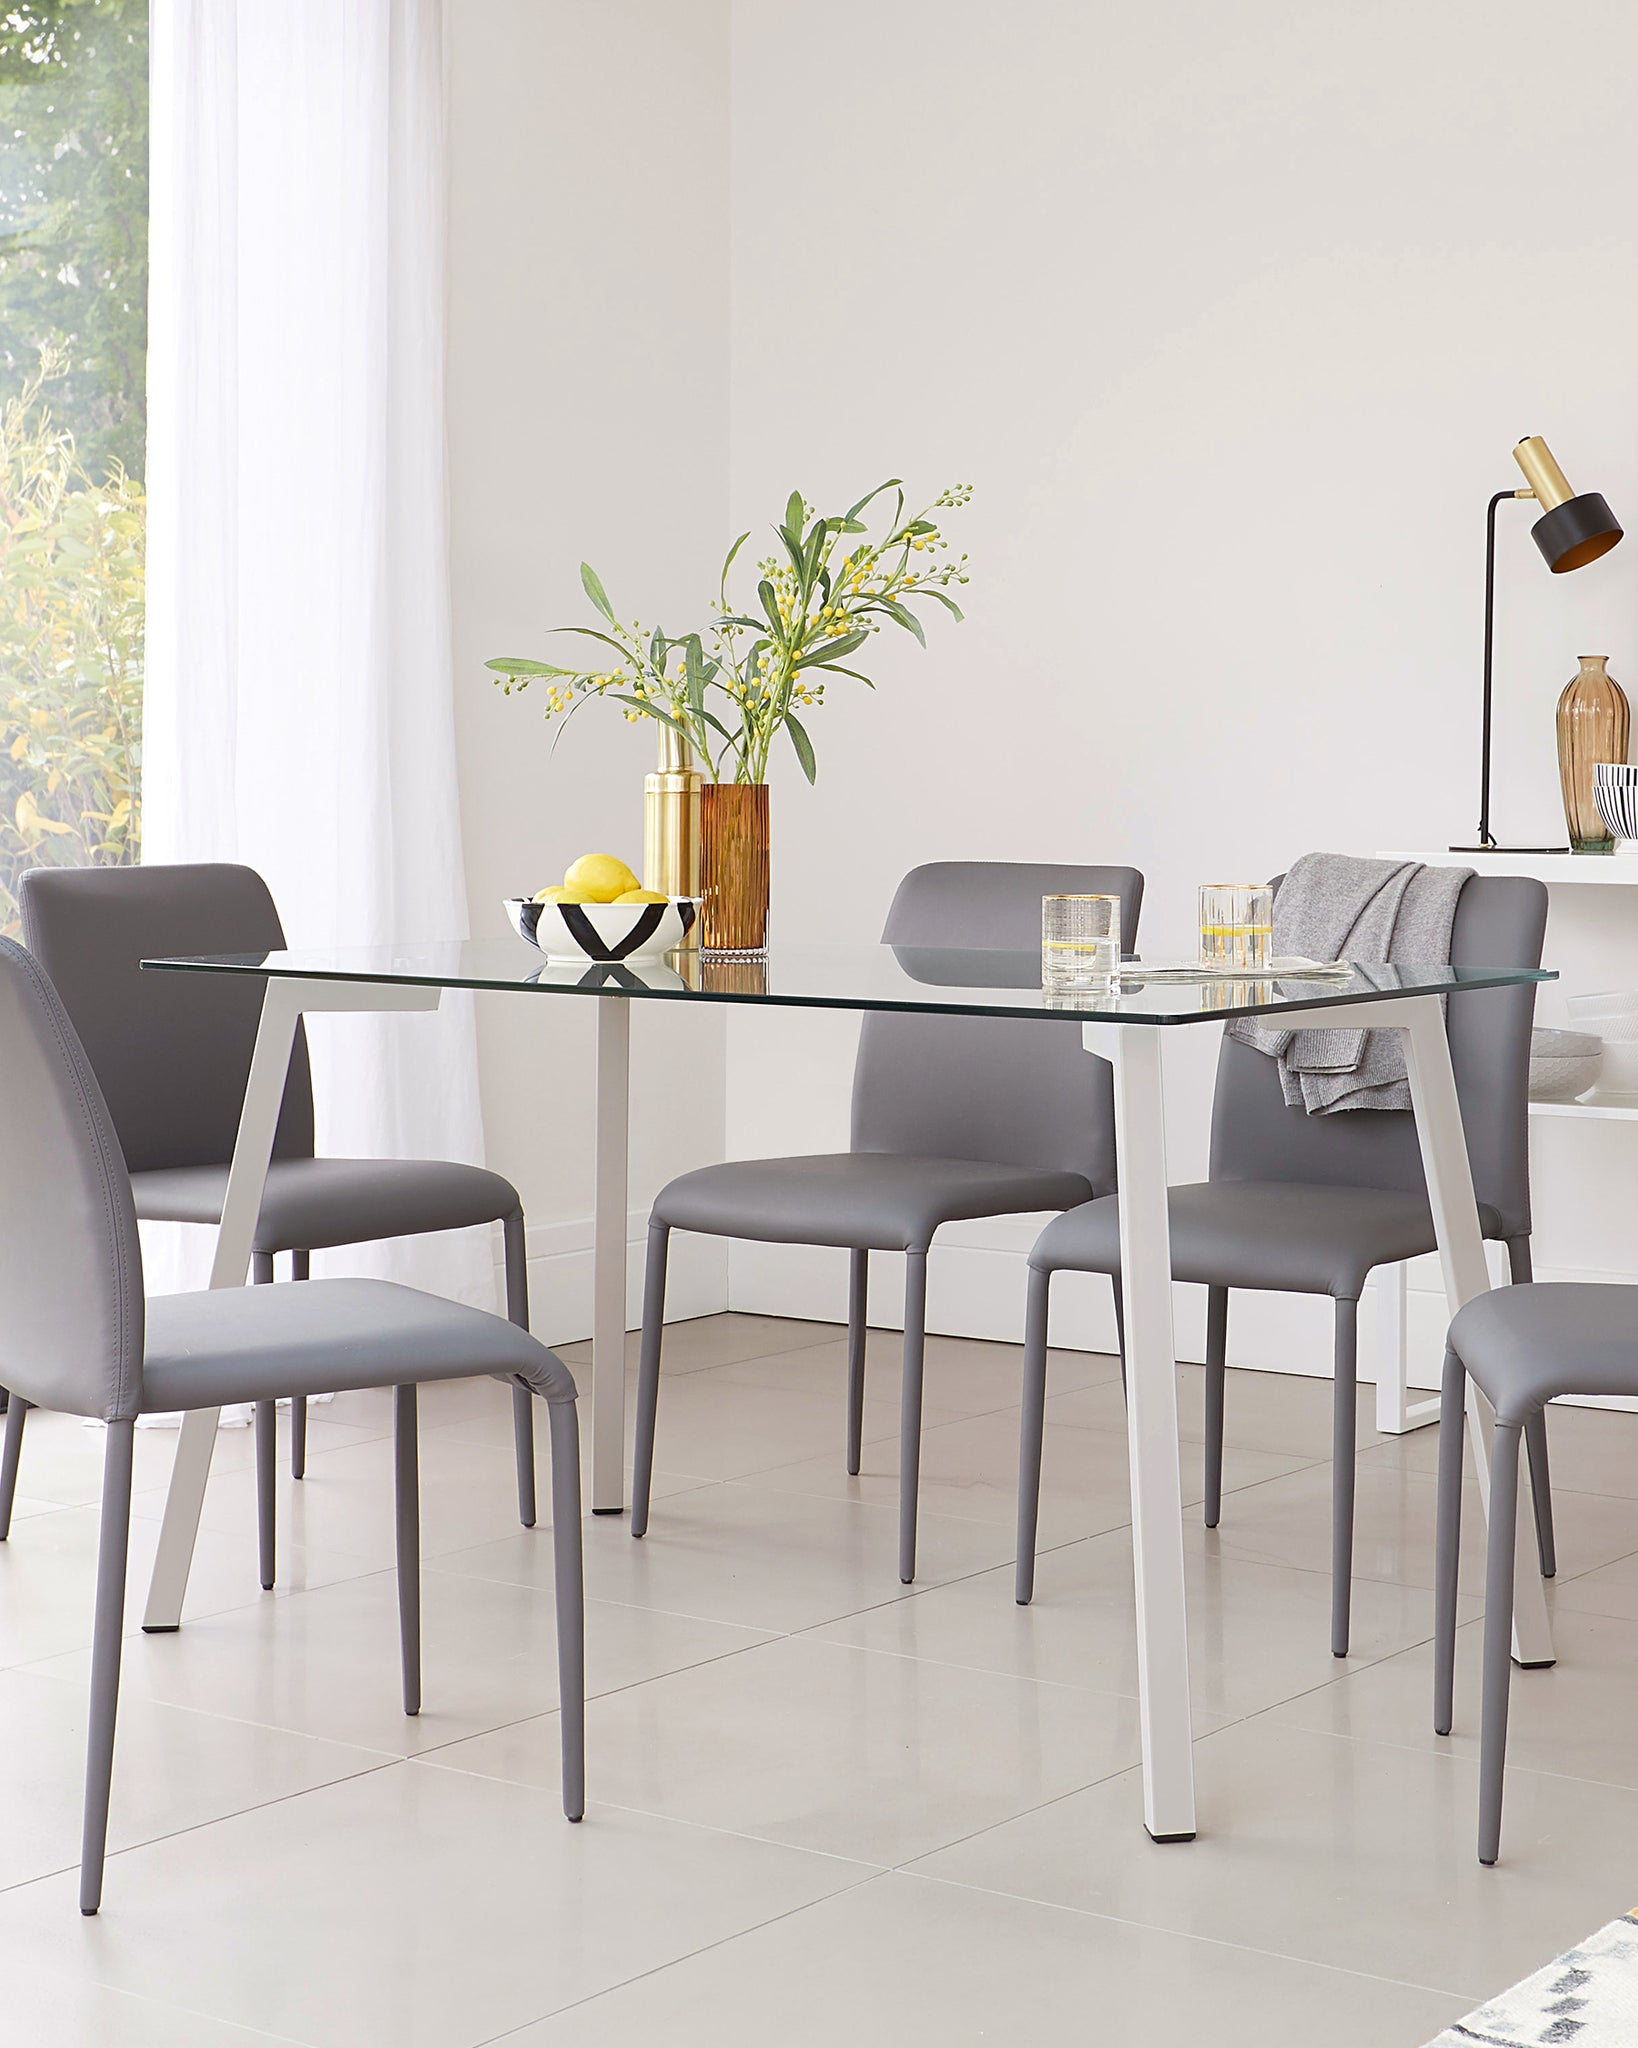 Profile Glass 4 To 6 Seater Dining Table